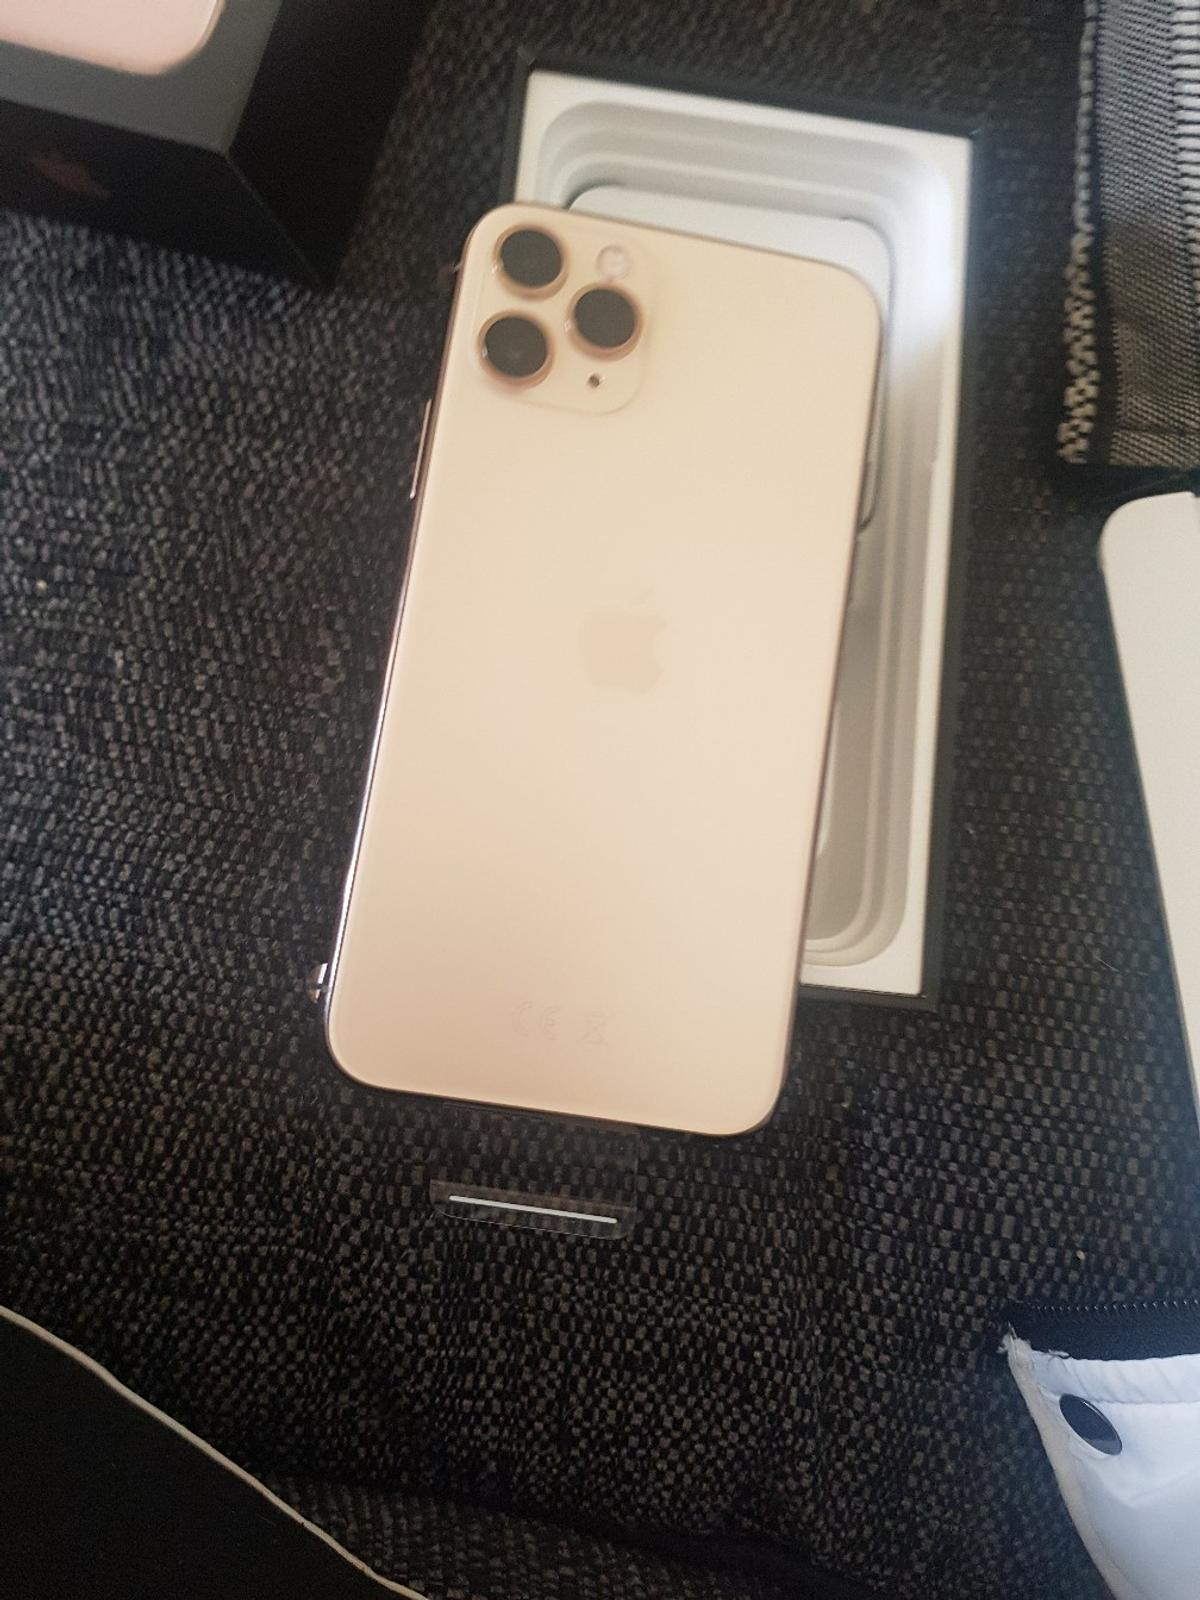 brand new I phone 11 pro gold in box